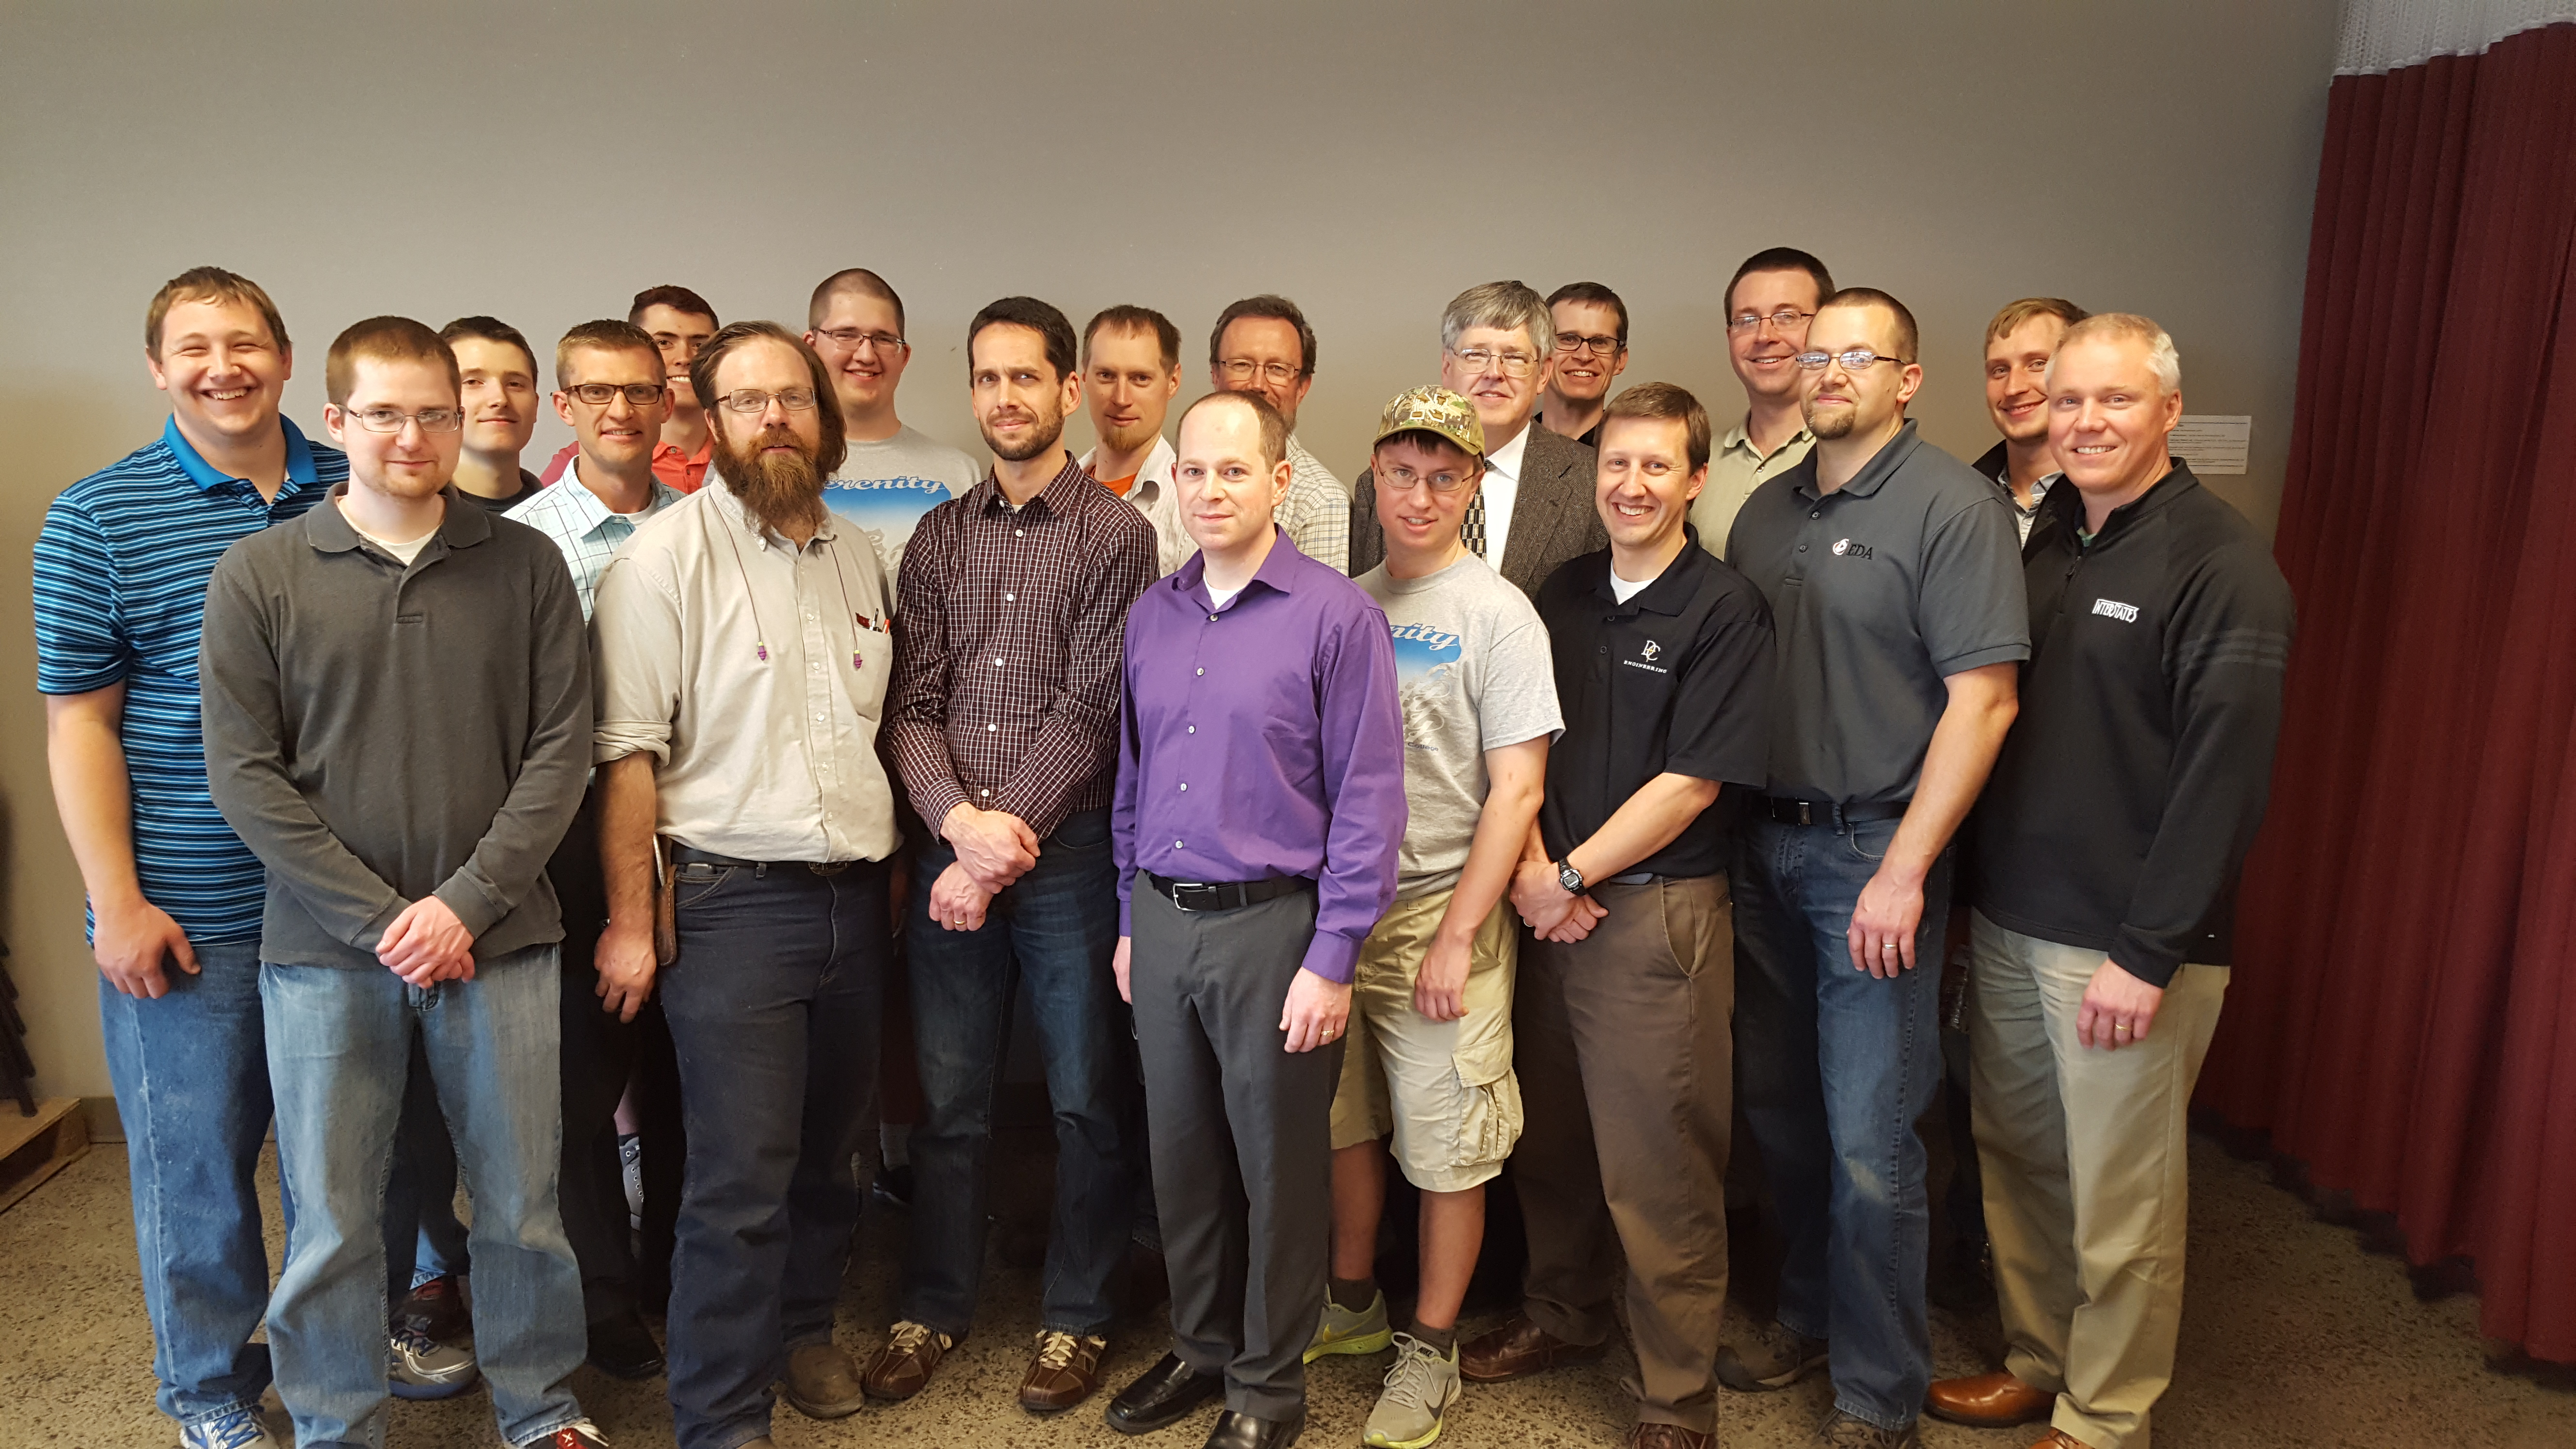 Engineers from Dordt College visit the Groschopp facility.